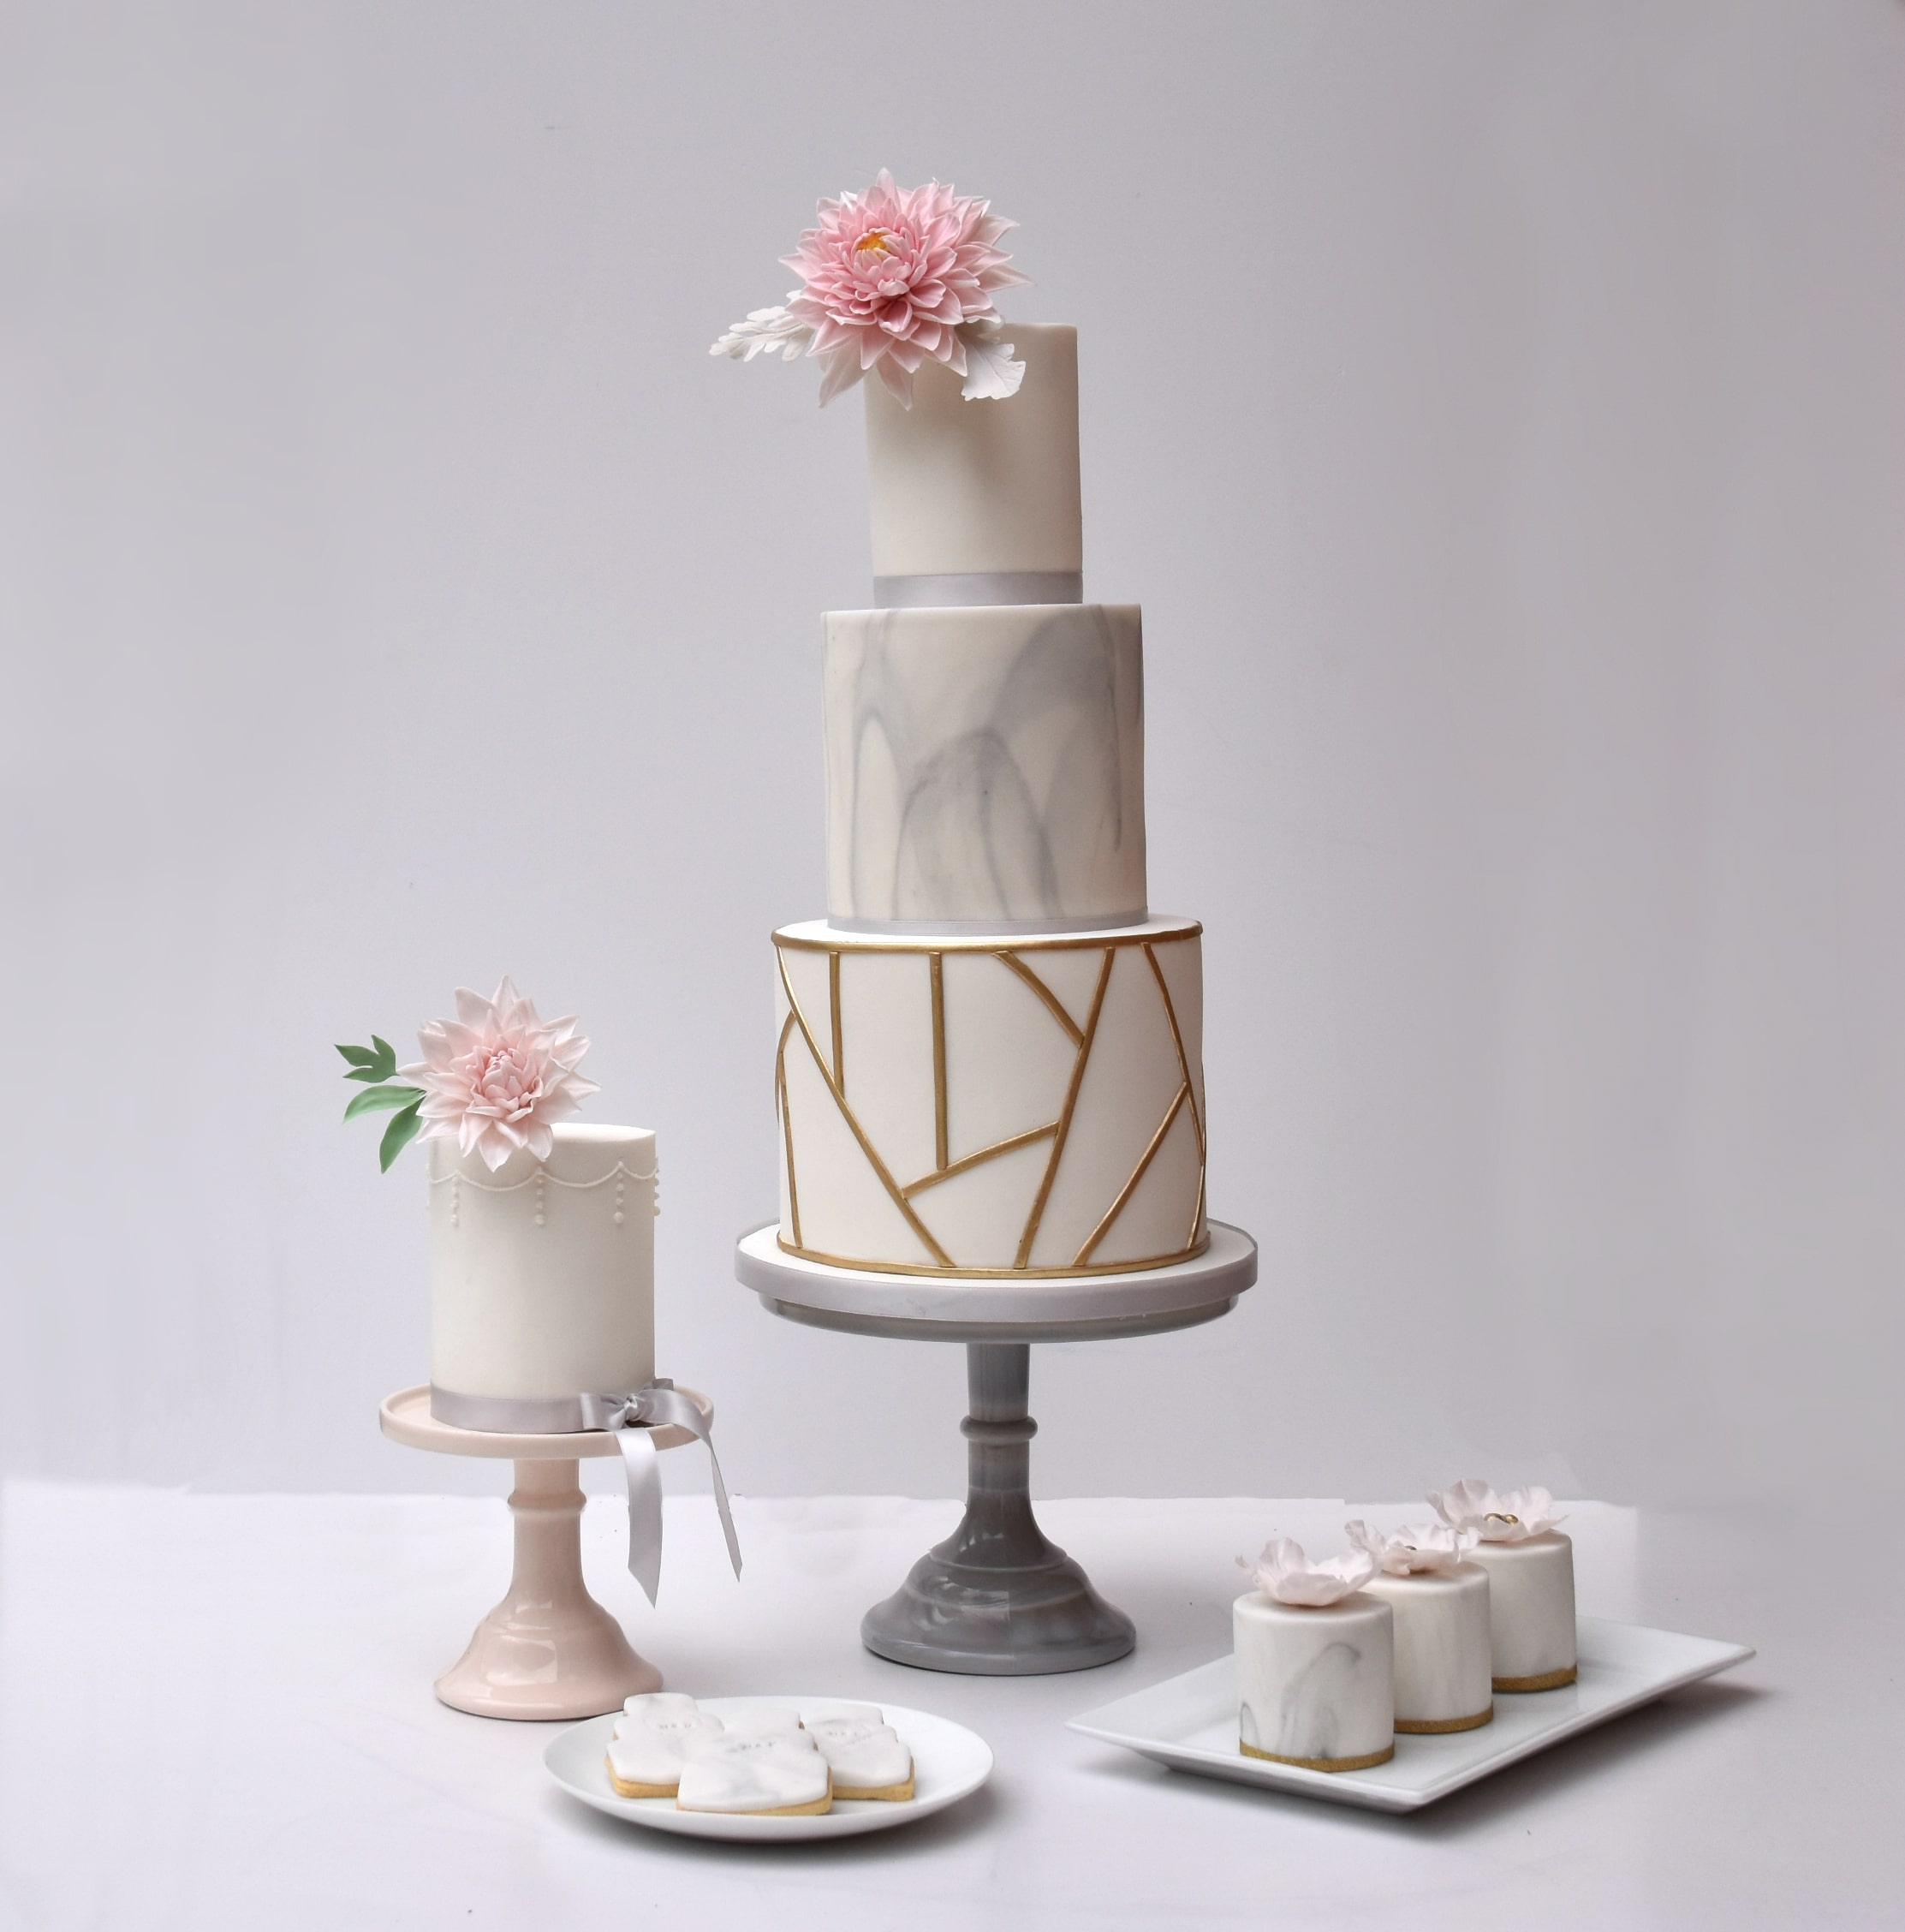 Luxury wedding dessert table with modern 3 tiered cake, mini cakes, single cake, iced biscuits and sugar flowers. Modern design with gold geometric pattern, marble grey and sugar dahlia. Cake by Hertfordshire wedding cake company Meadowsweet Cakes.